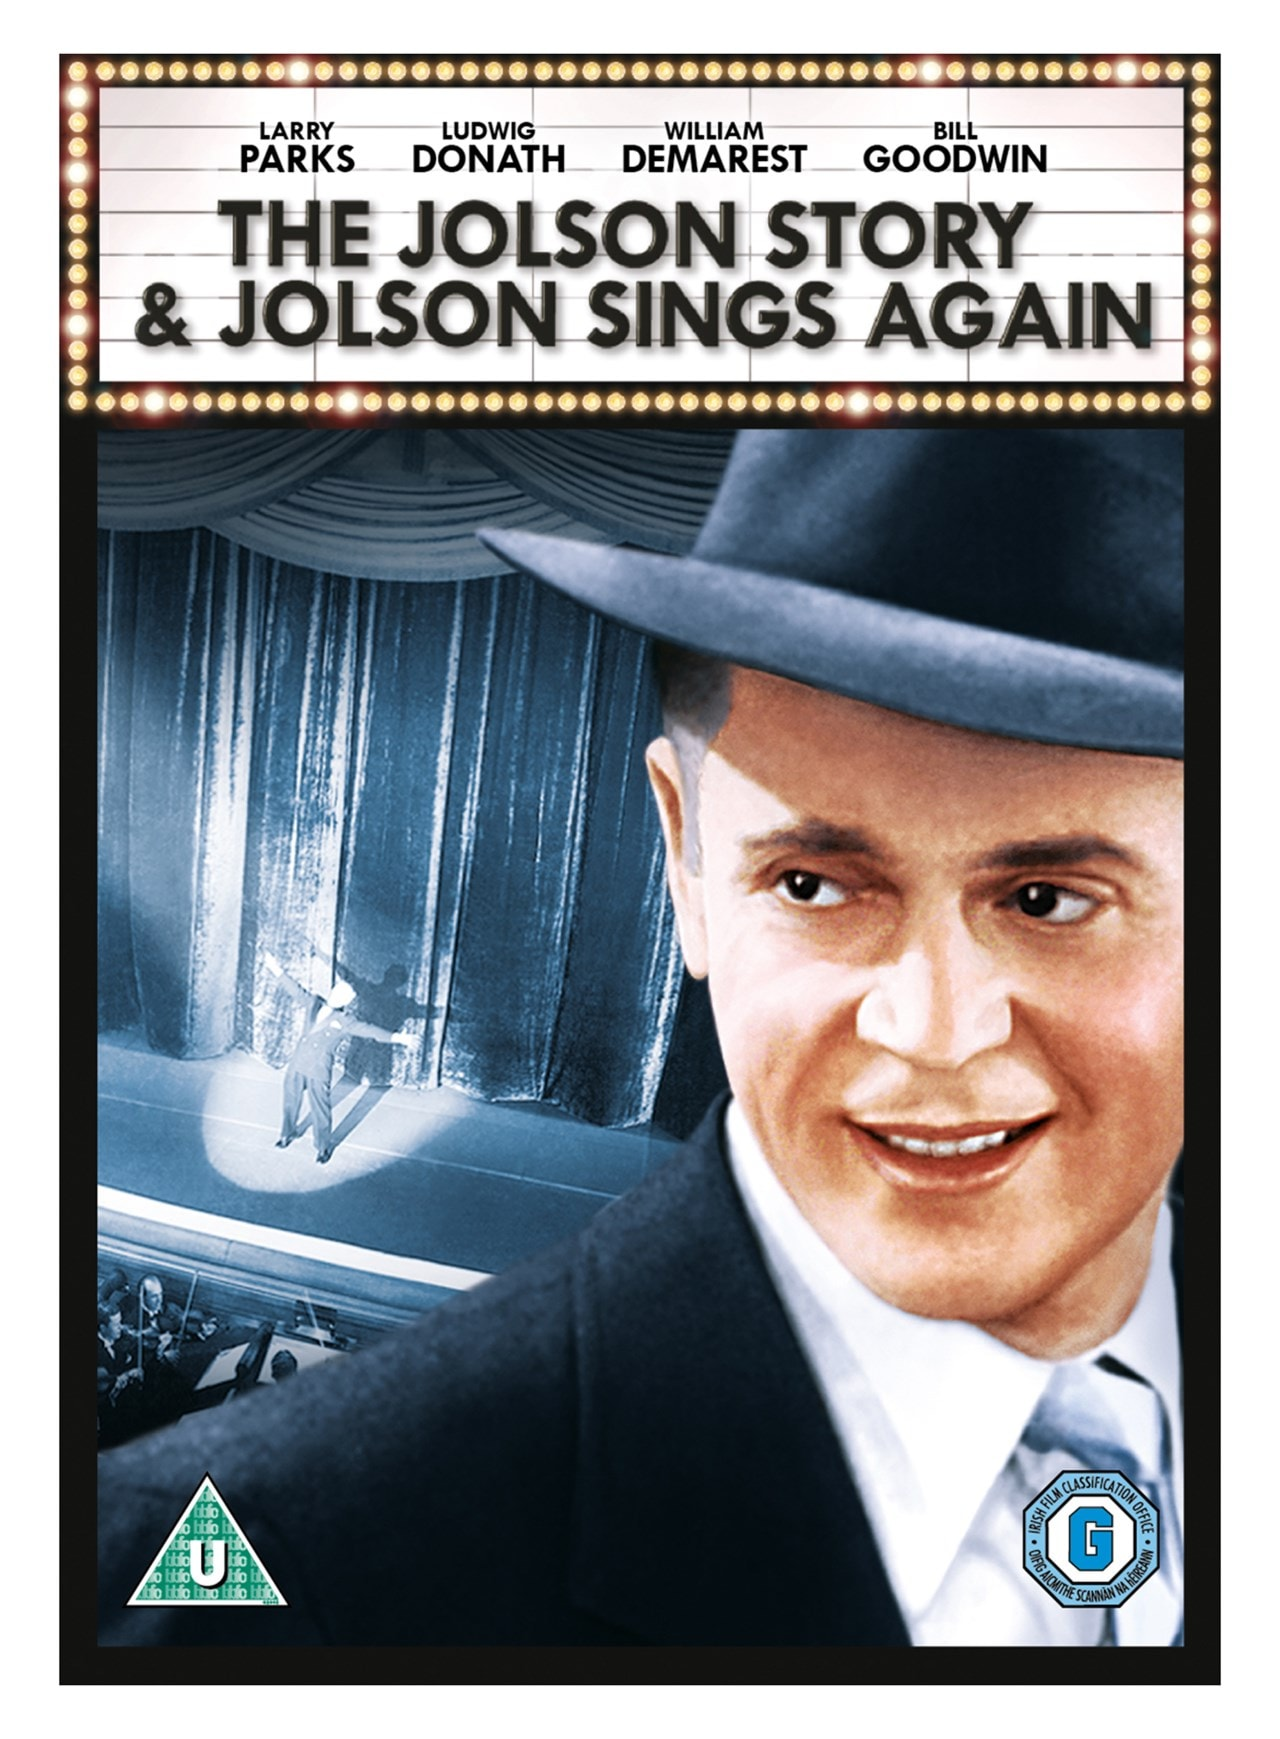 The Jolson Story/Jolson Sings Again - 1